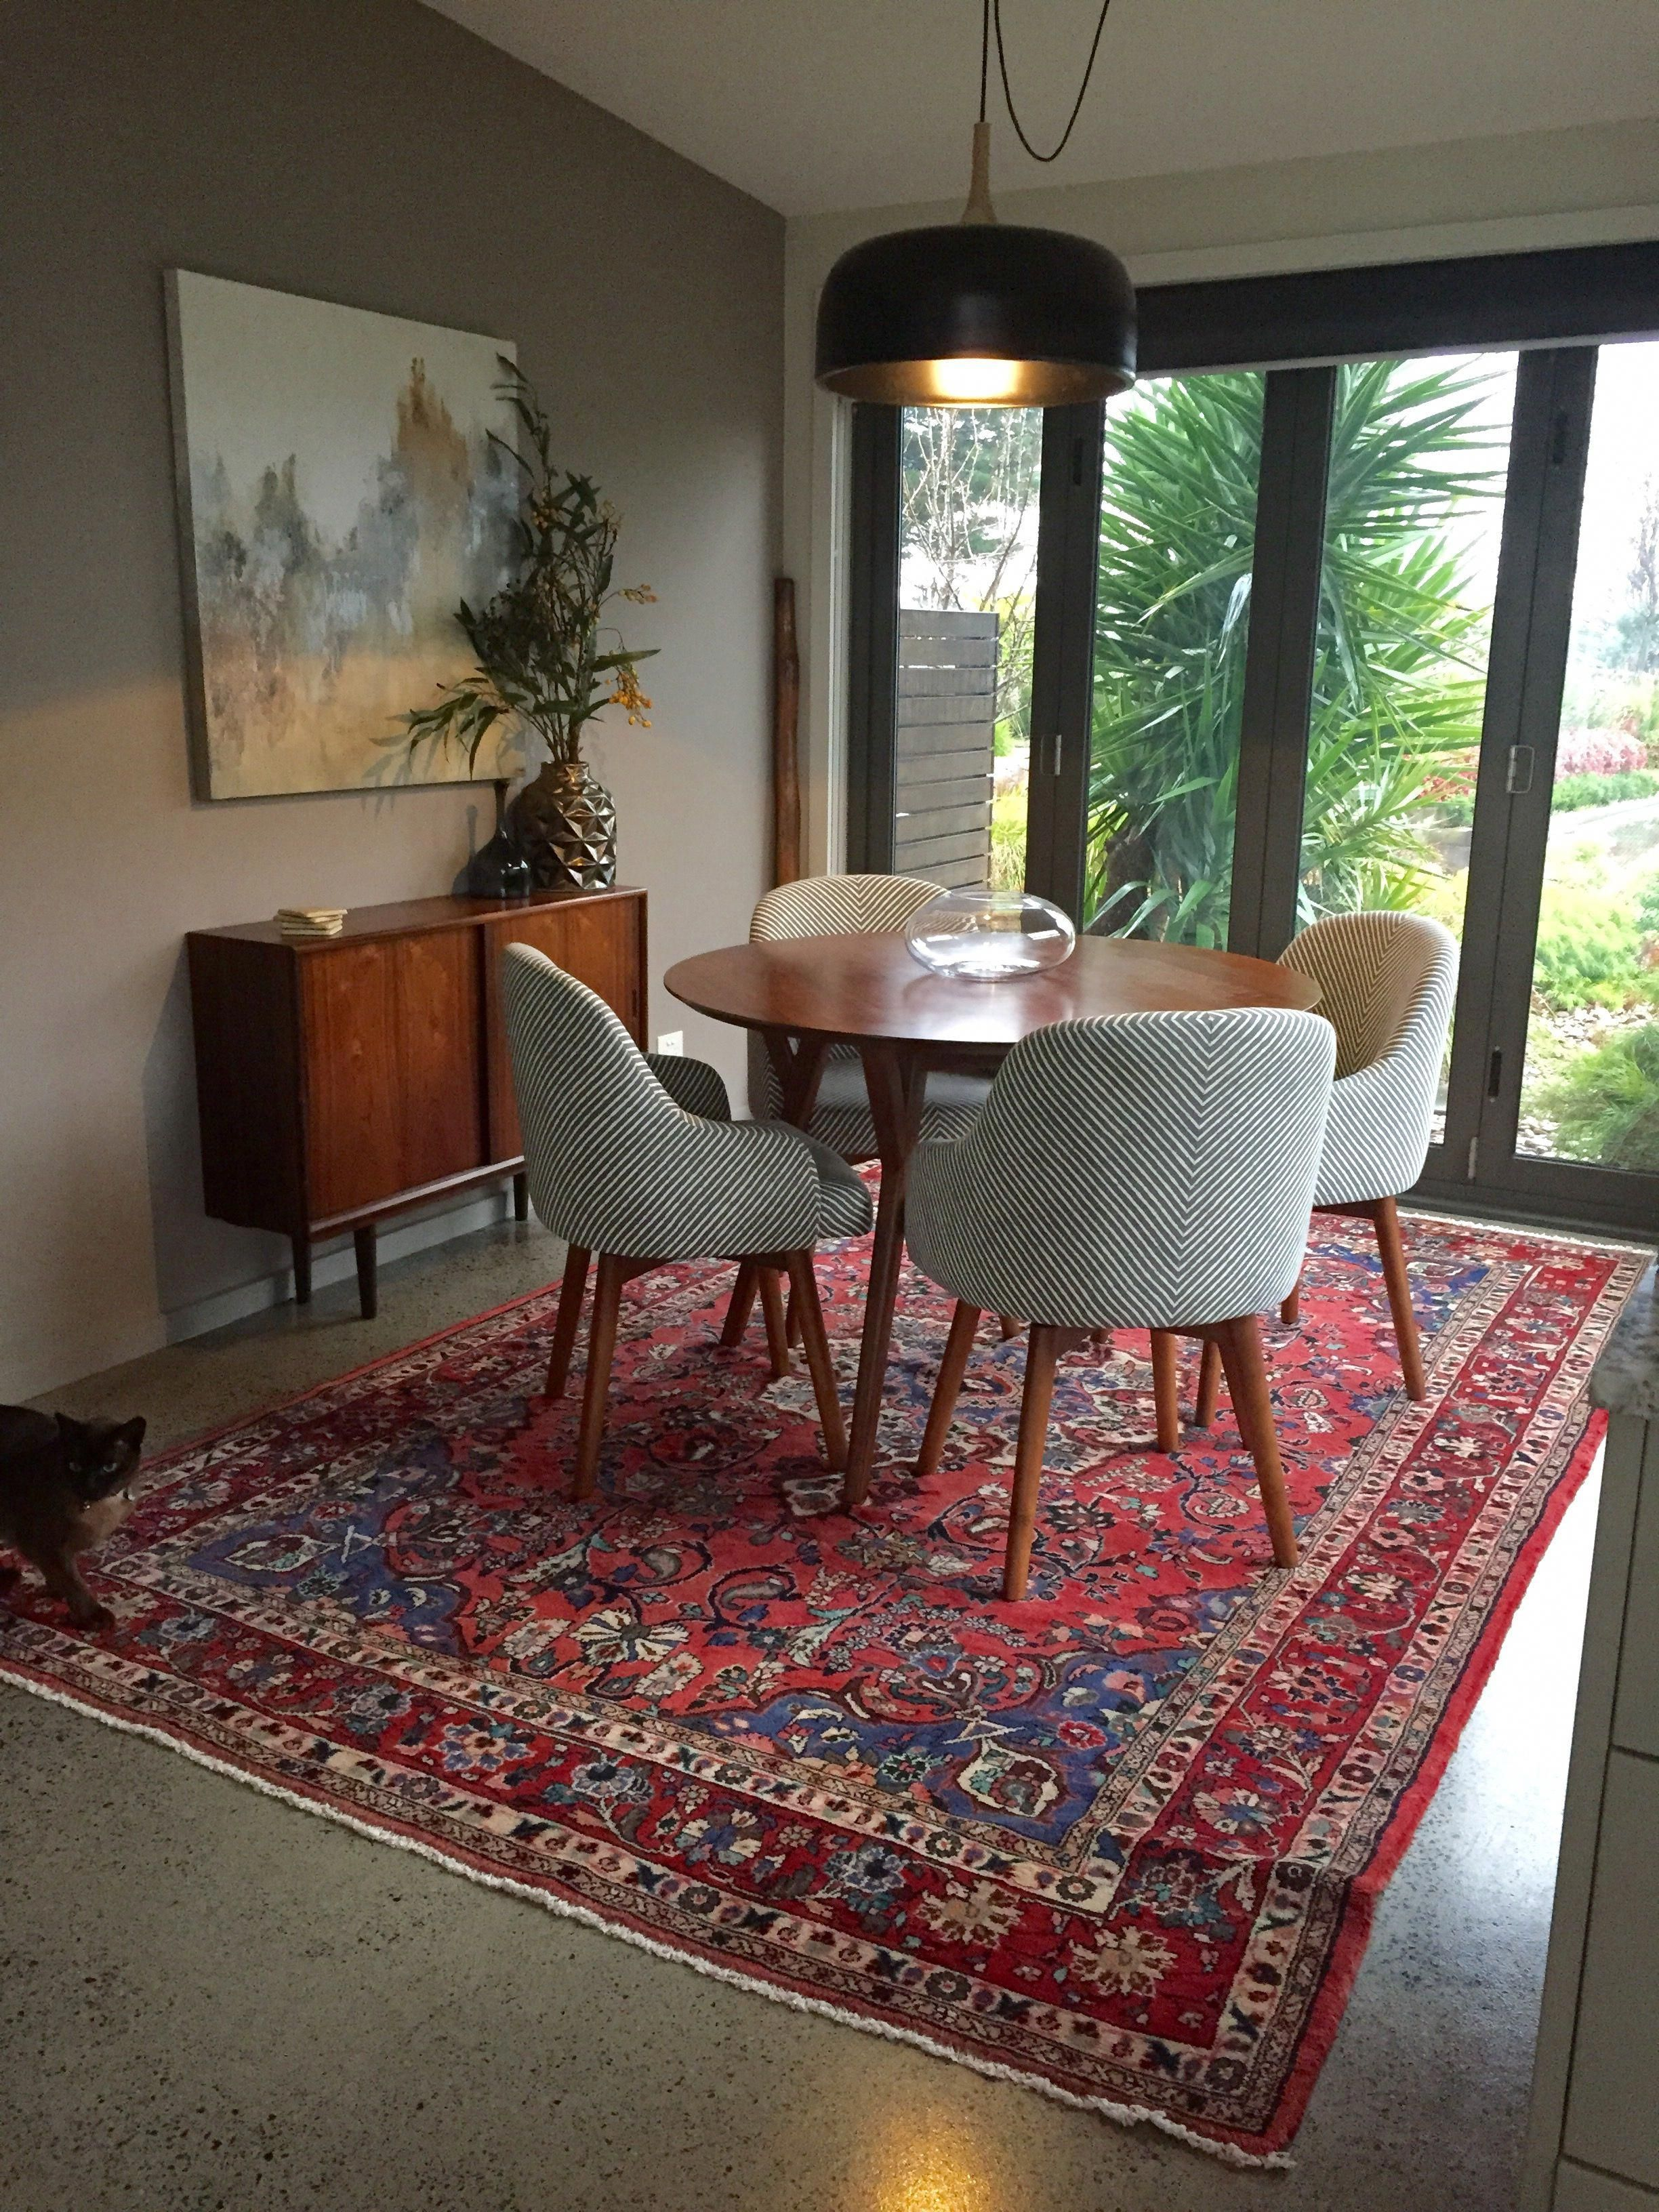 Image Result For Modern Decorating With Persian Rugs Dining